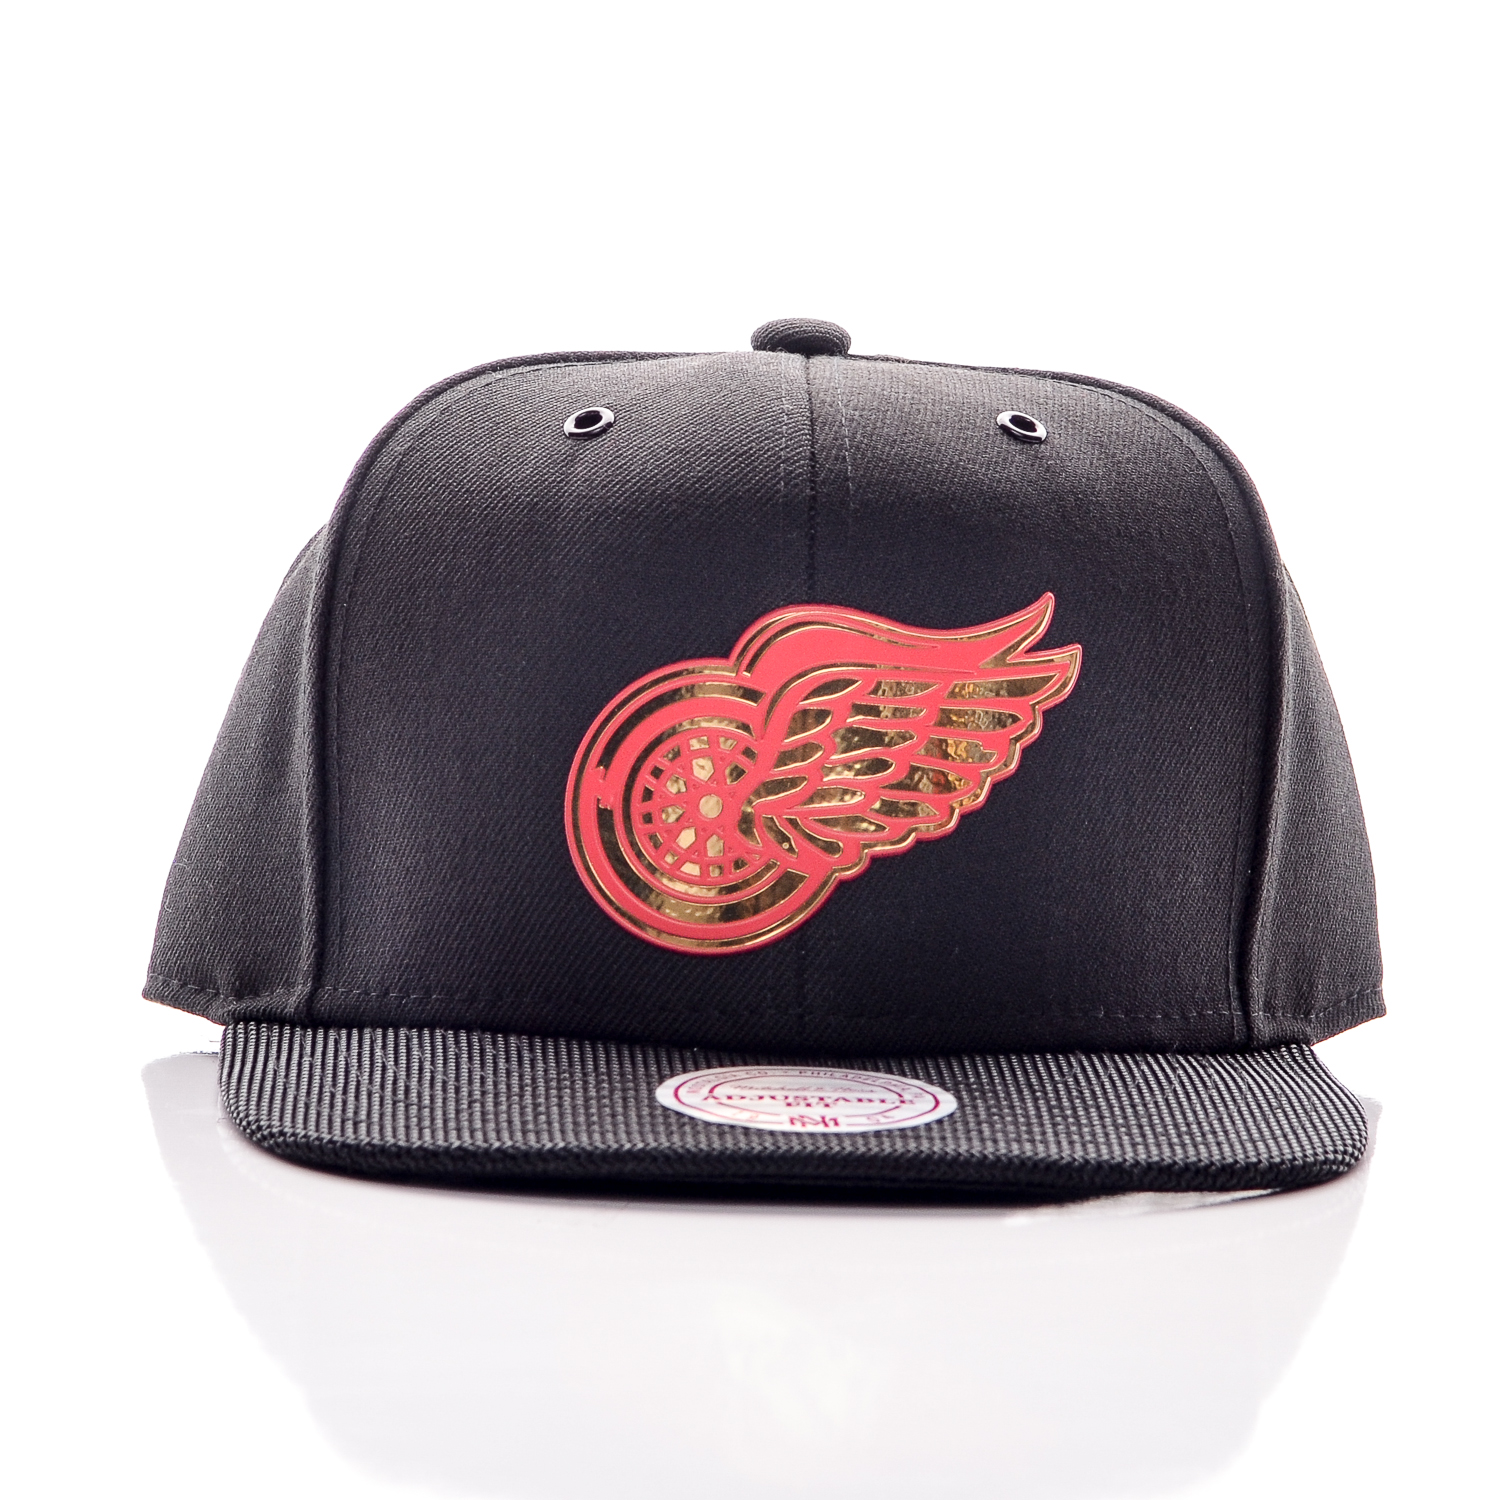 Snapback Mitchel & Ness Detroit Red Wings Black